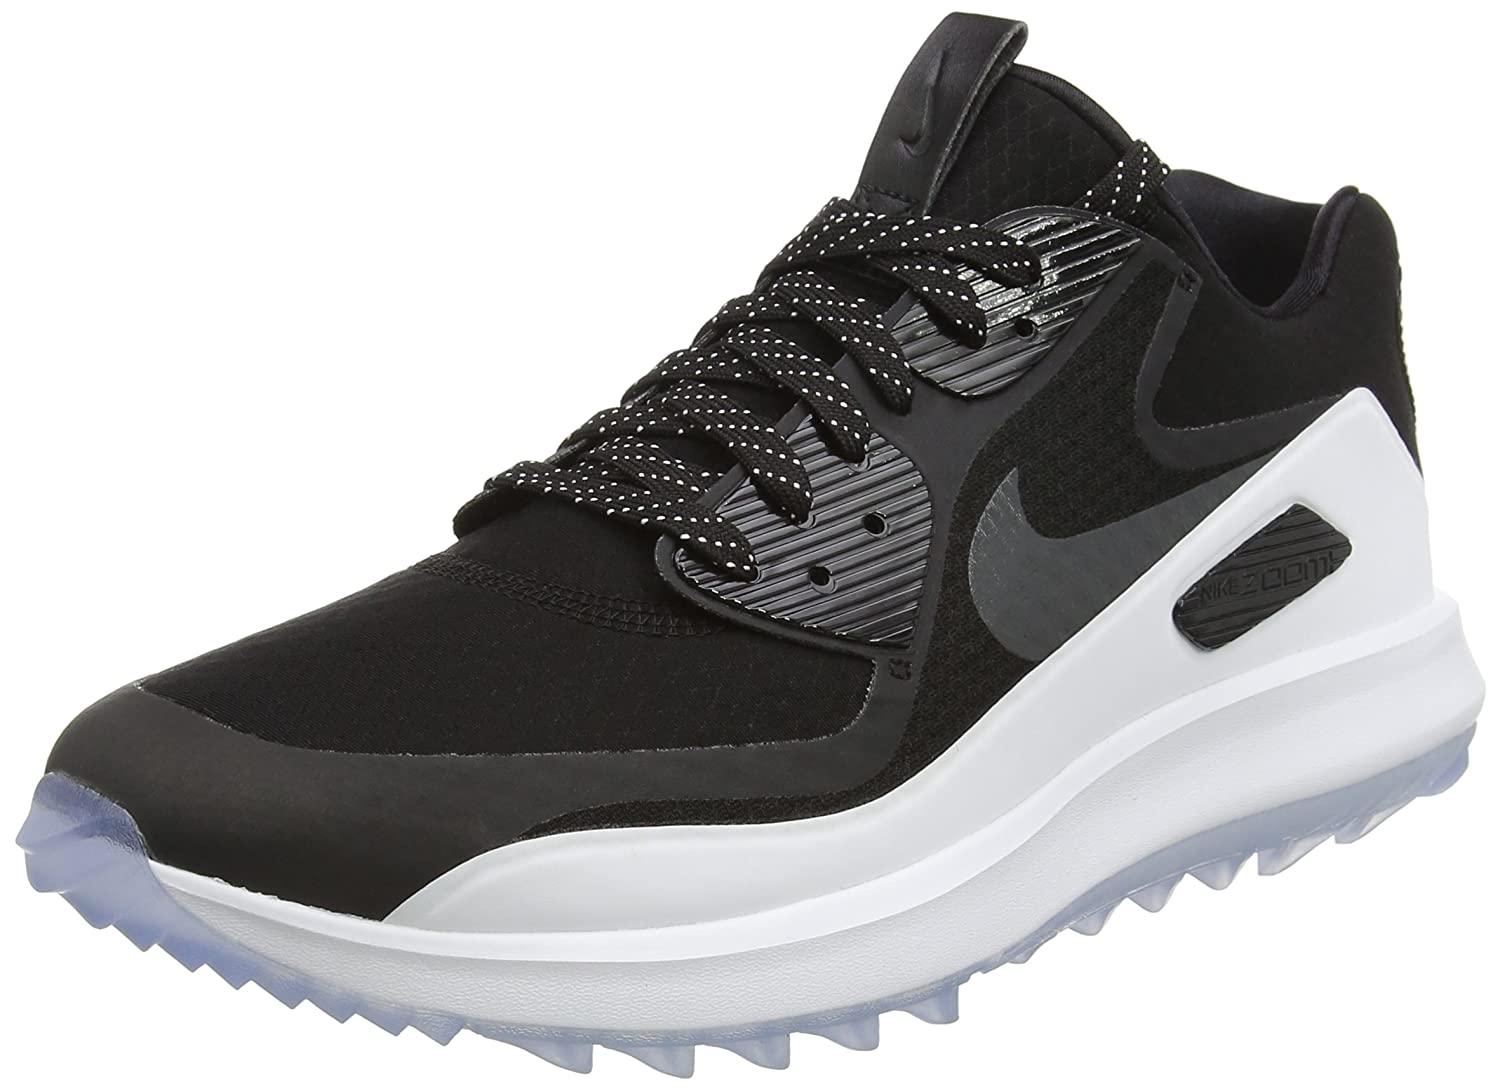 new style 12b39 f9313 Nike Men's Air Zoom 90 IT Golf Shoes